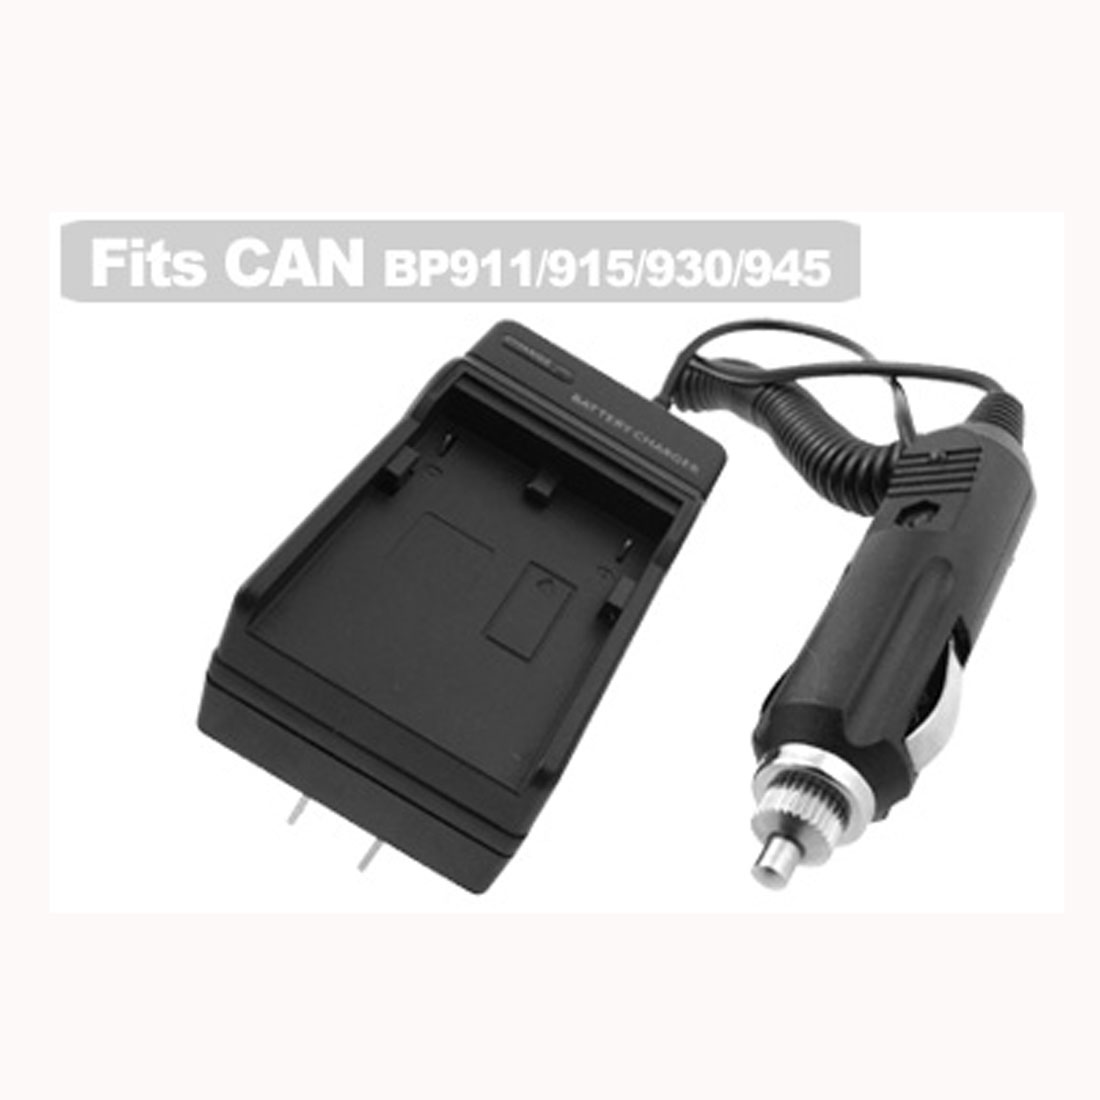 US Plug AC100-240V Camera Battery Charger for Canon BP911 BP915 BP930 BP945